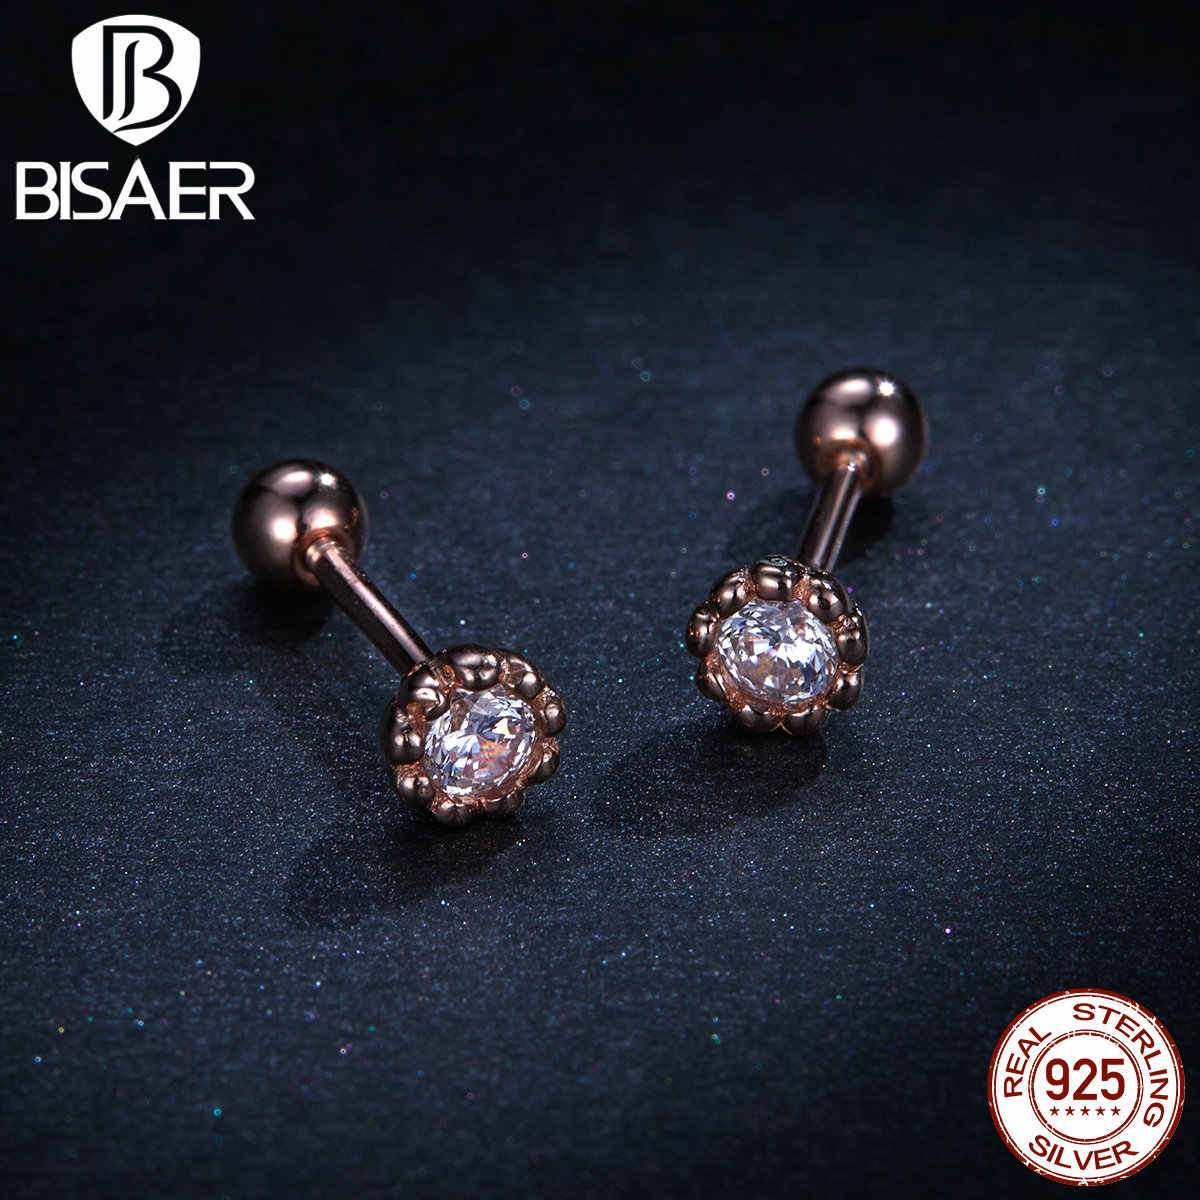 Wedding Earrings BISAER 925 Sterling Silver Clear Cubic Zircon Exquisite Stud Earrings for Women Engagement Jewelry EFE219